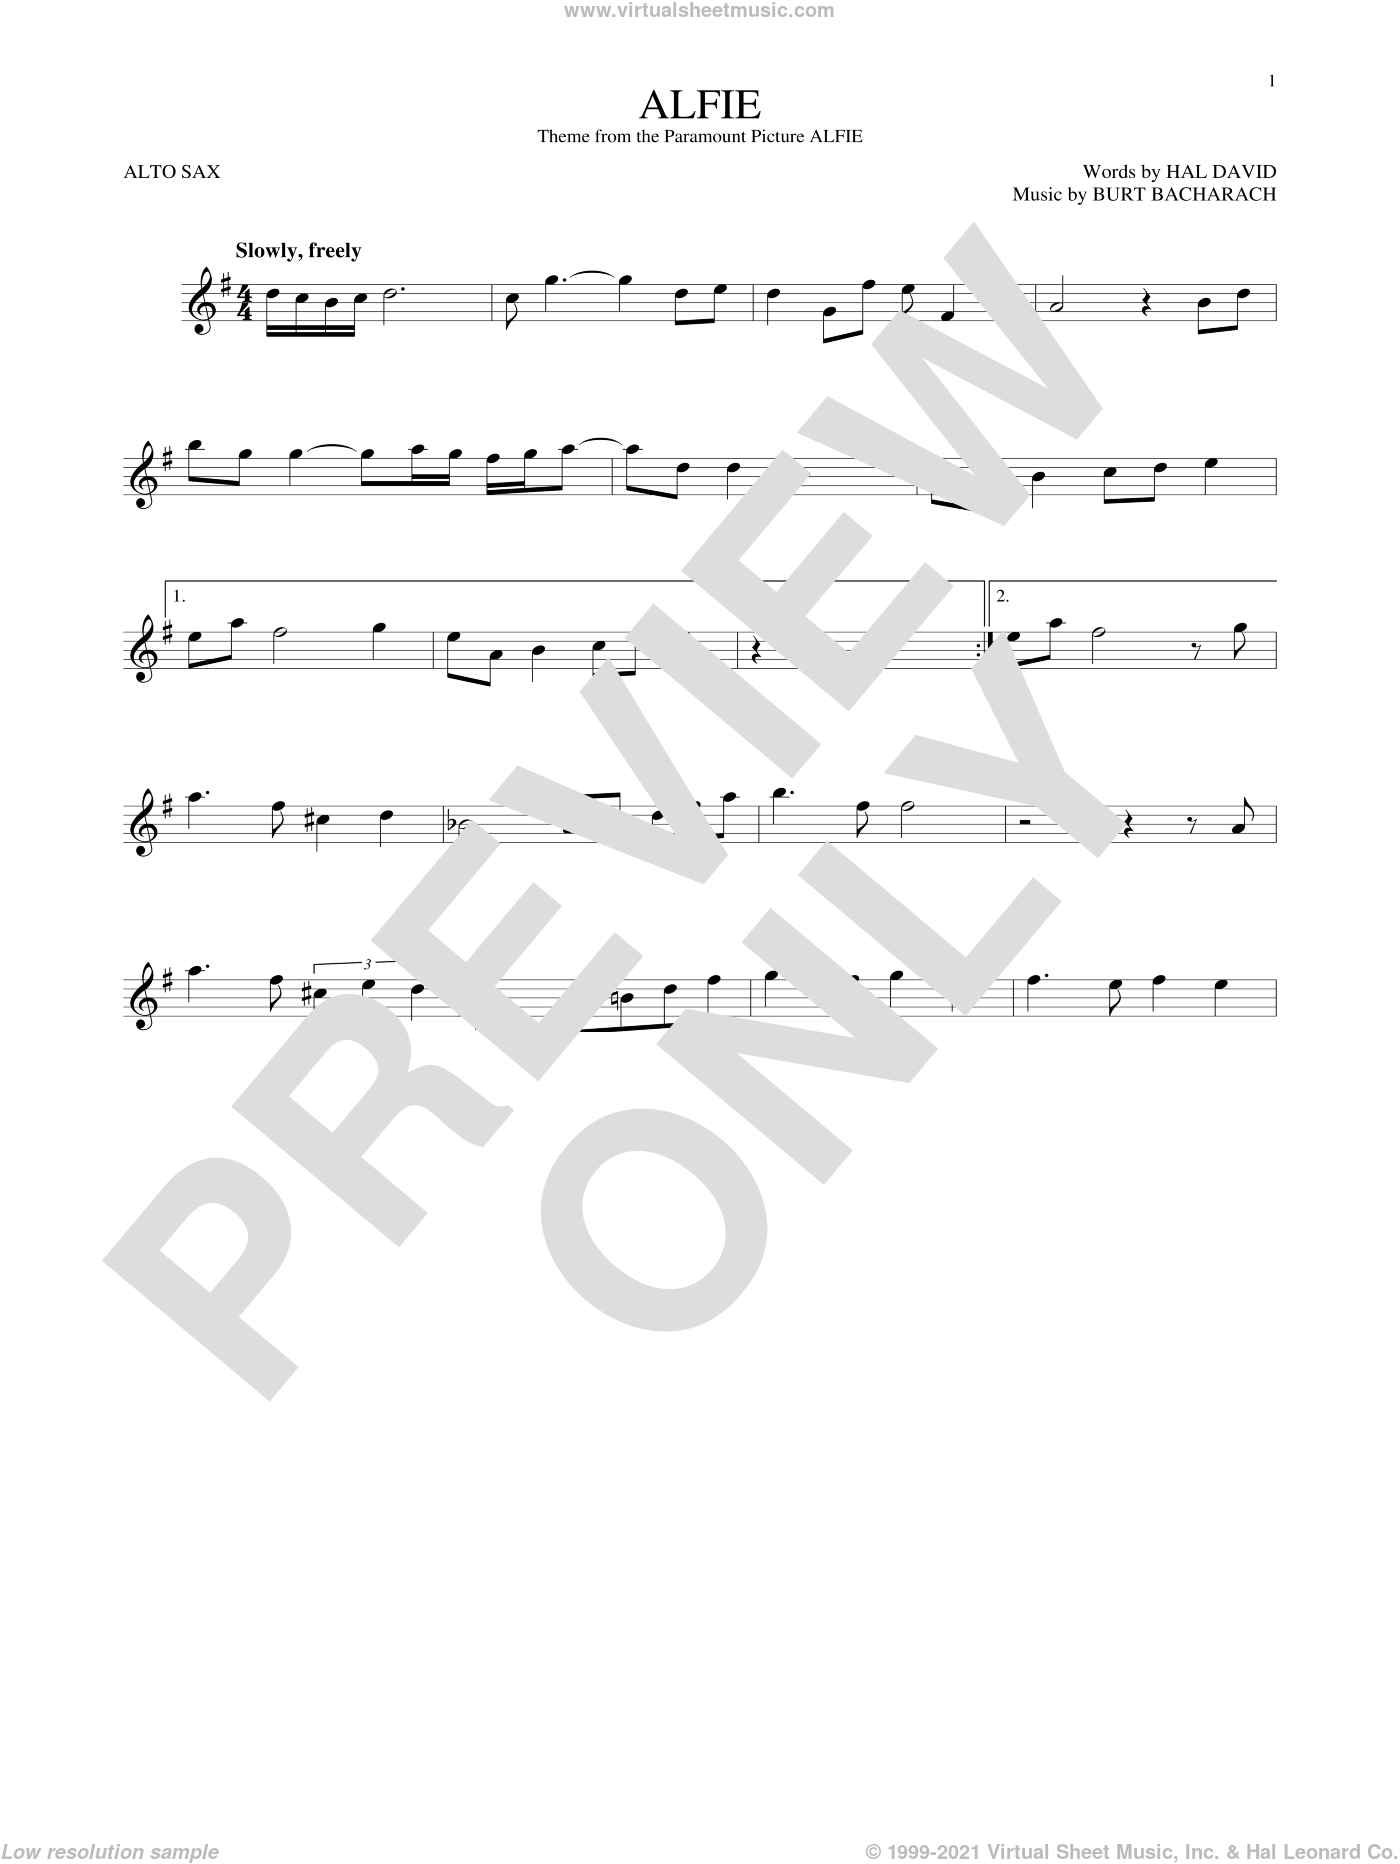 Alfie sheet music for alto saxophone solo ( Sax) by Dionne Warwick, Cher, Miscellaneous, Sonny Rollins, Stevie Wonder, Burt Bacharach and Hal David, intermediate alto saxophone ( Sax). Score Image Preview.